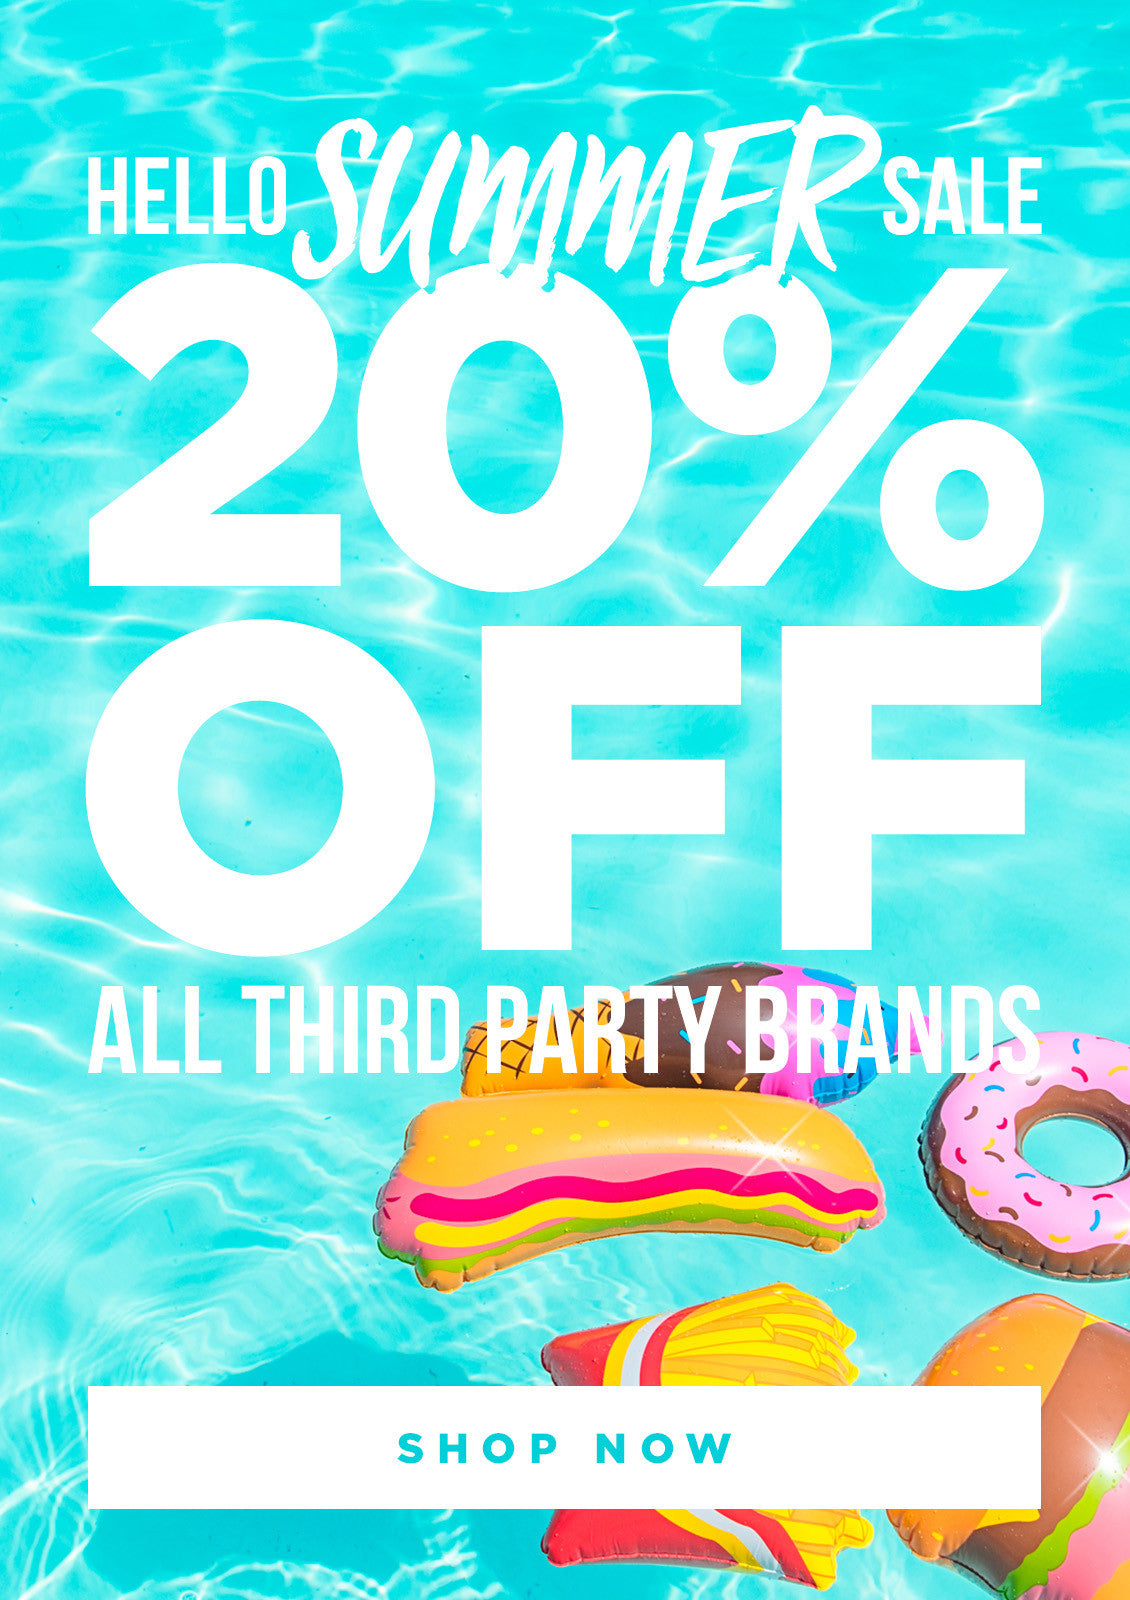 20% off all third-party brands: